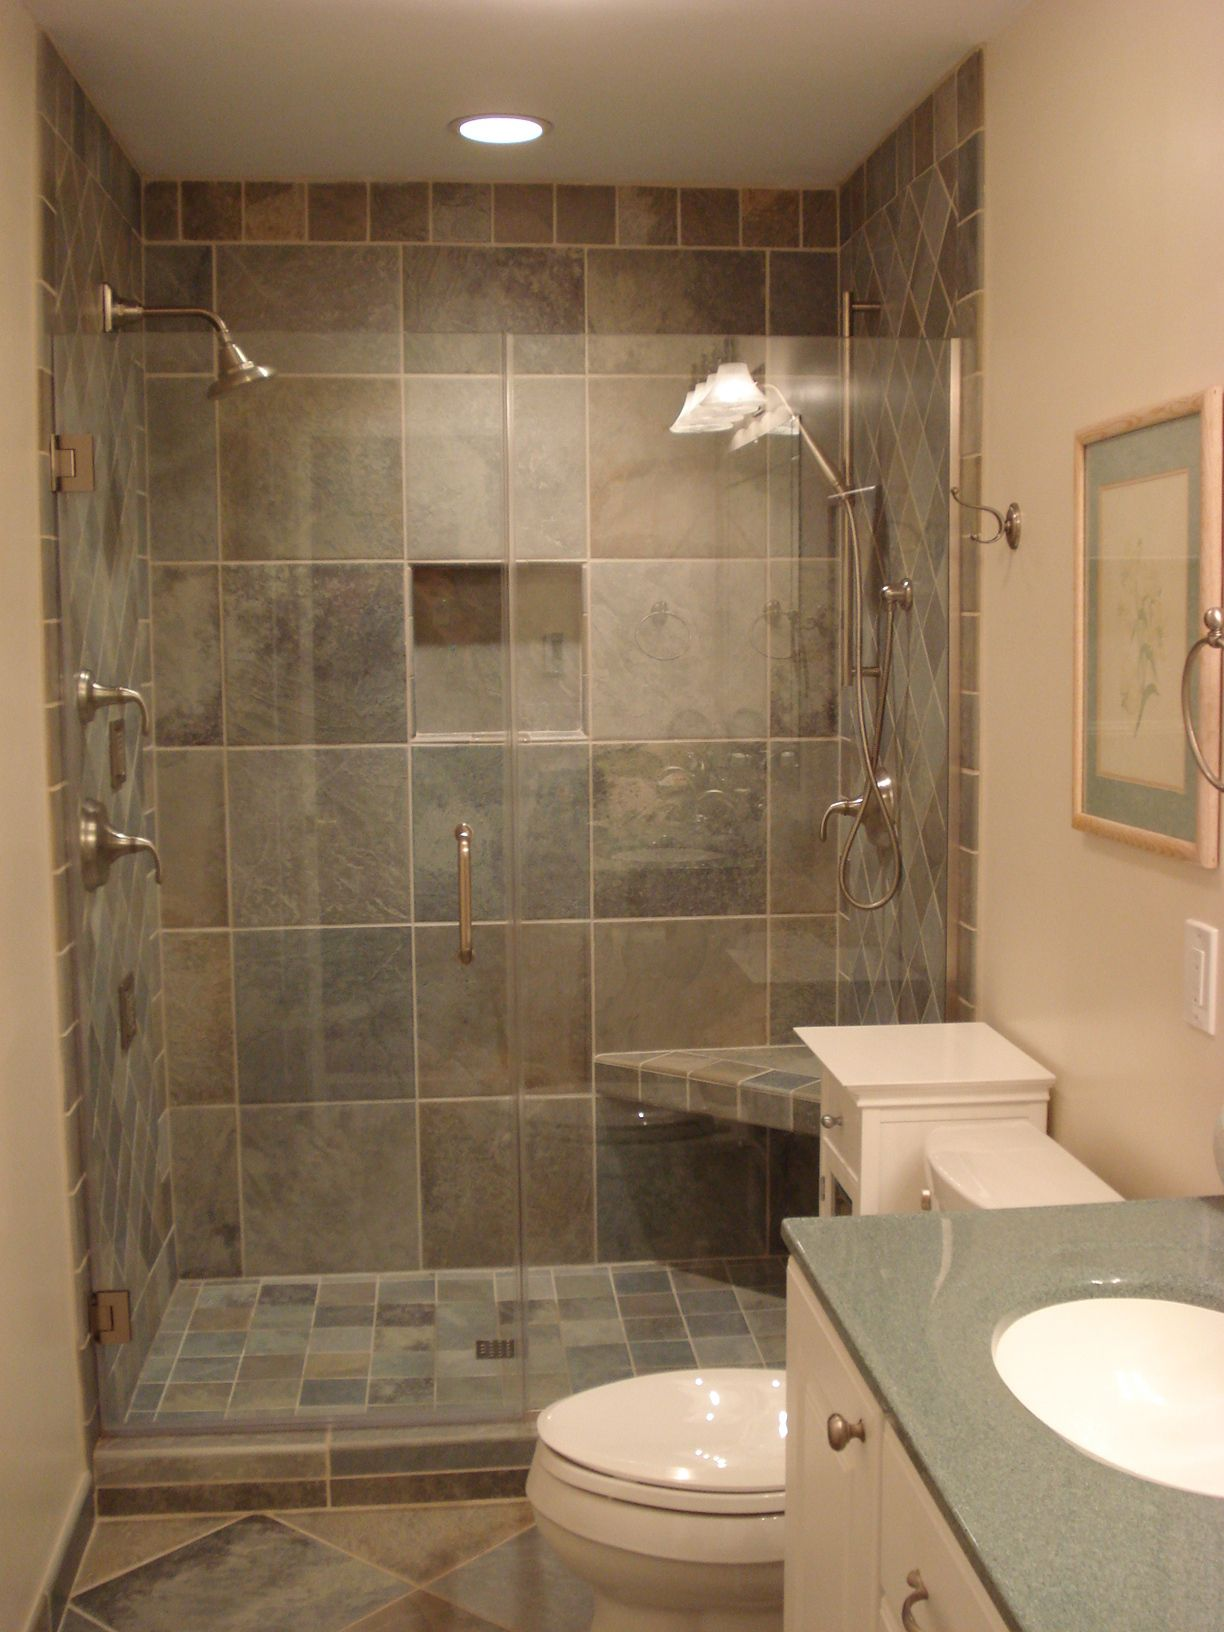 Bathroom and Shower Remodel Ideas and Tricks for a Limited ...